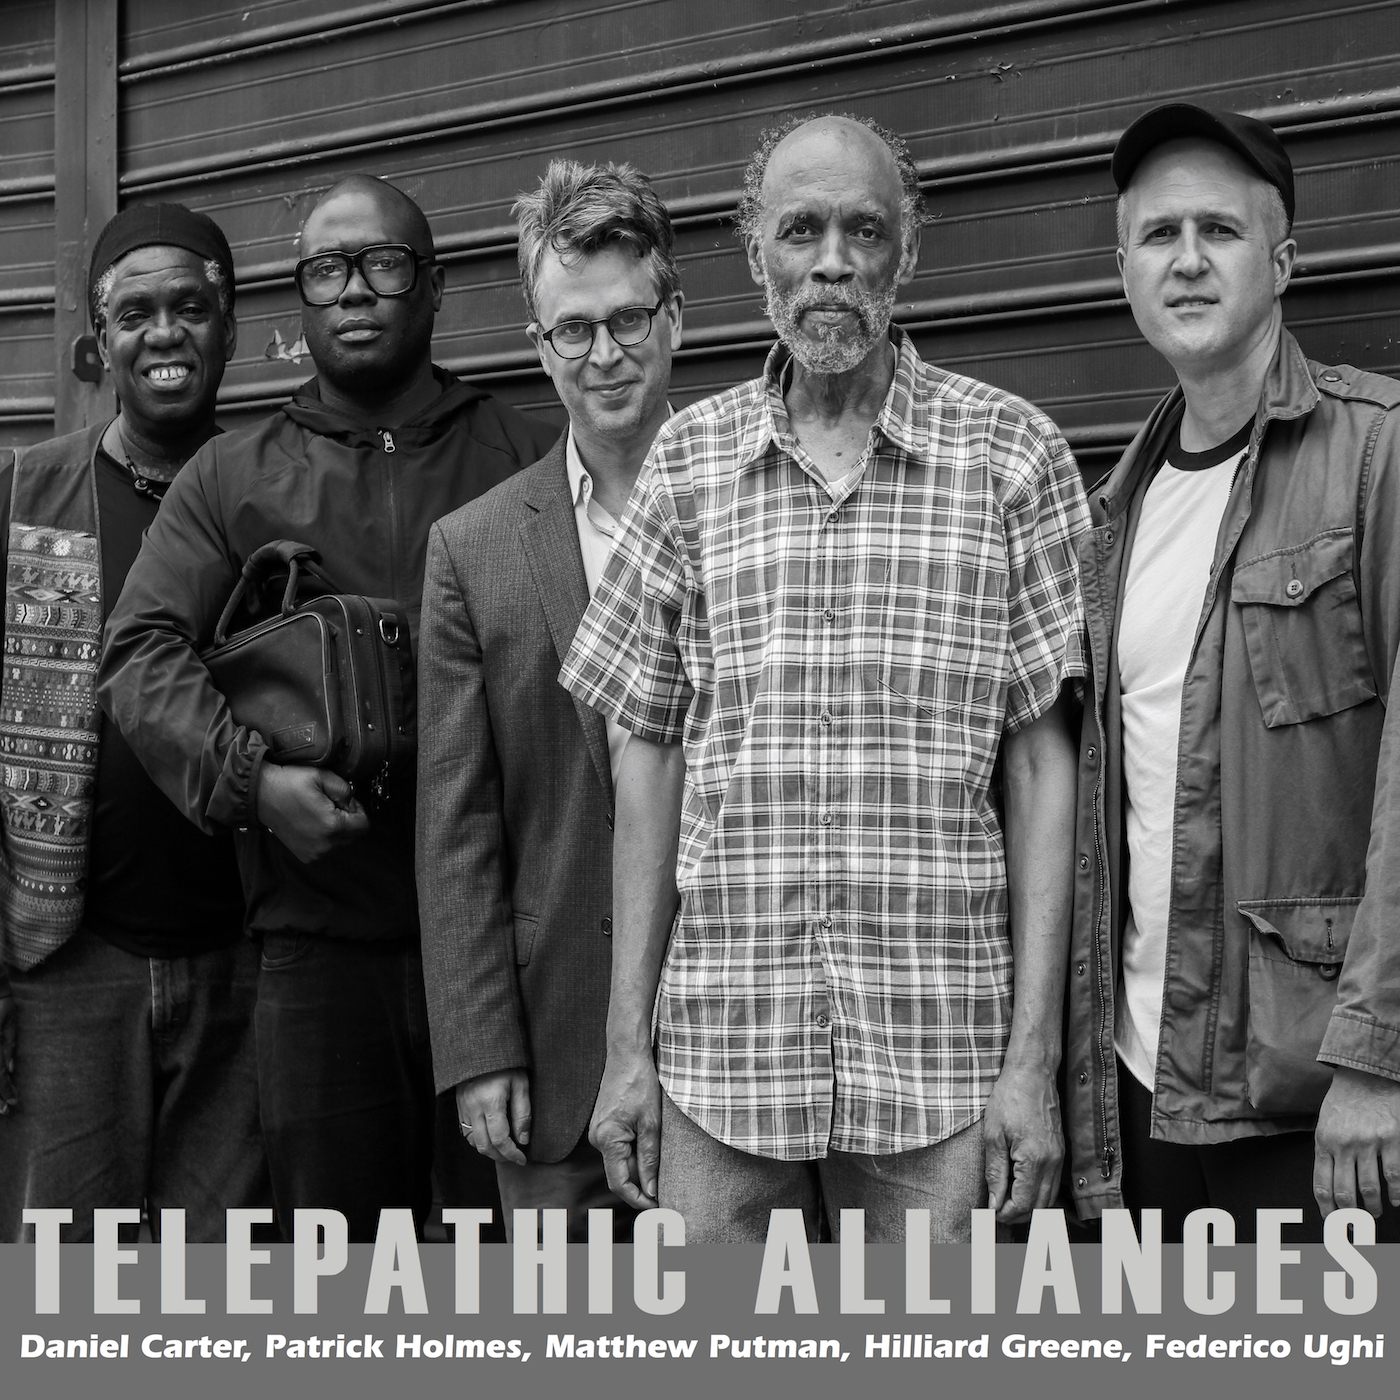 DANIEL CARTER, PATRICK HOLMES, MATTHEW PUTMAN, HILLIARD GREENE, FEDERICO UGHI TELEPATHIC ALLIANCES